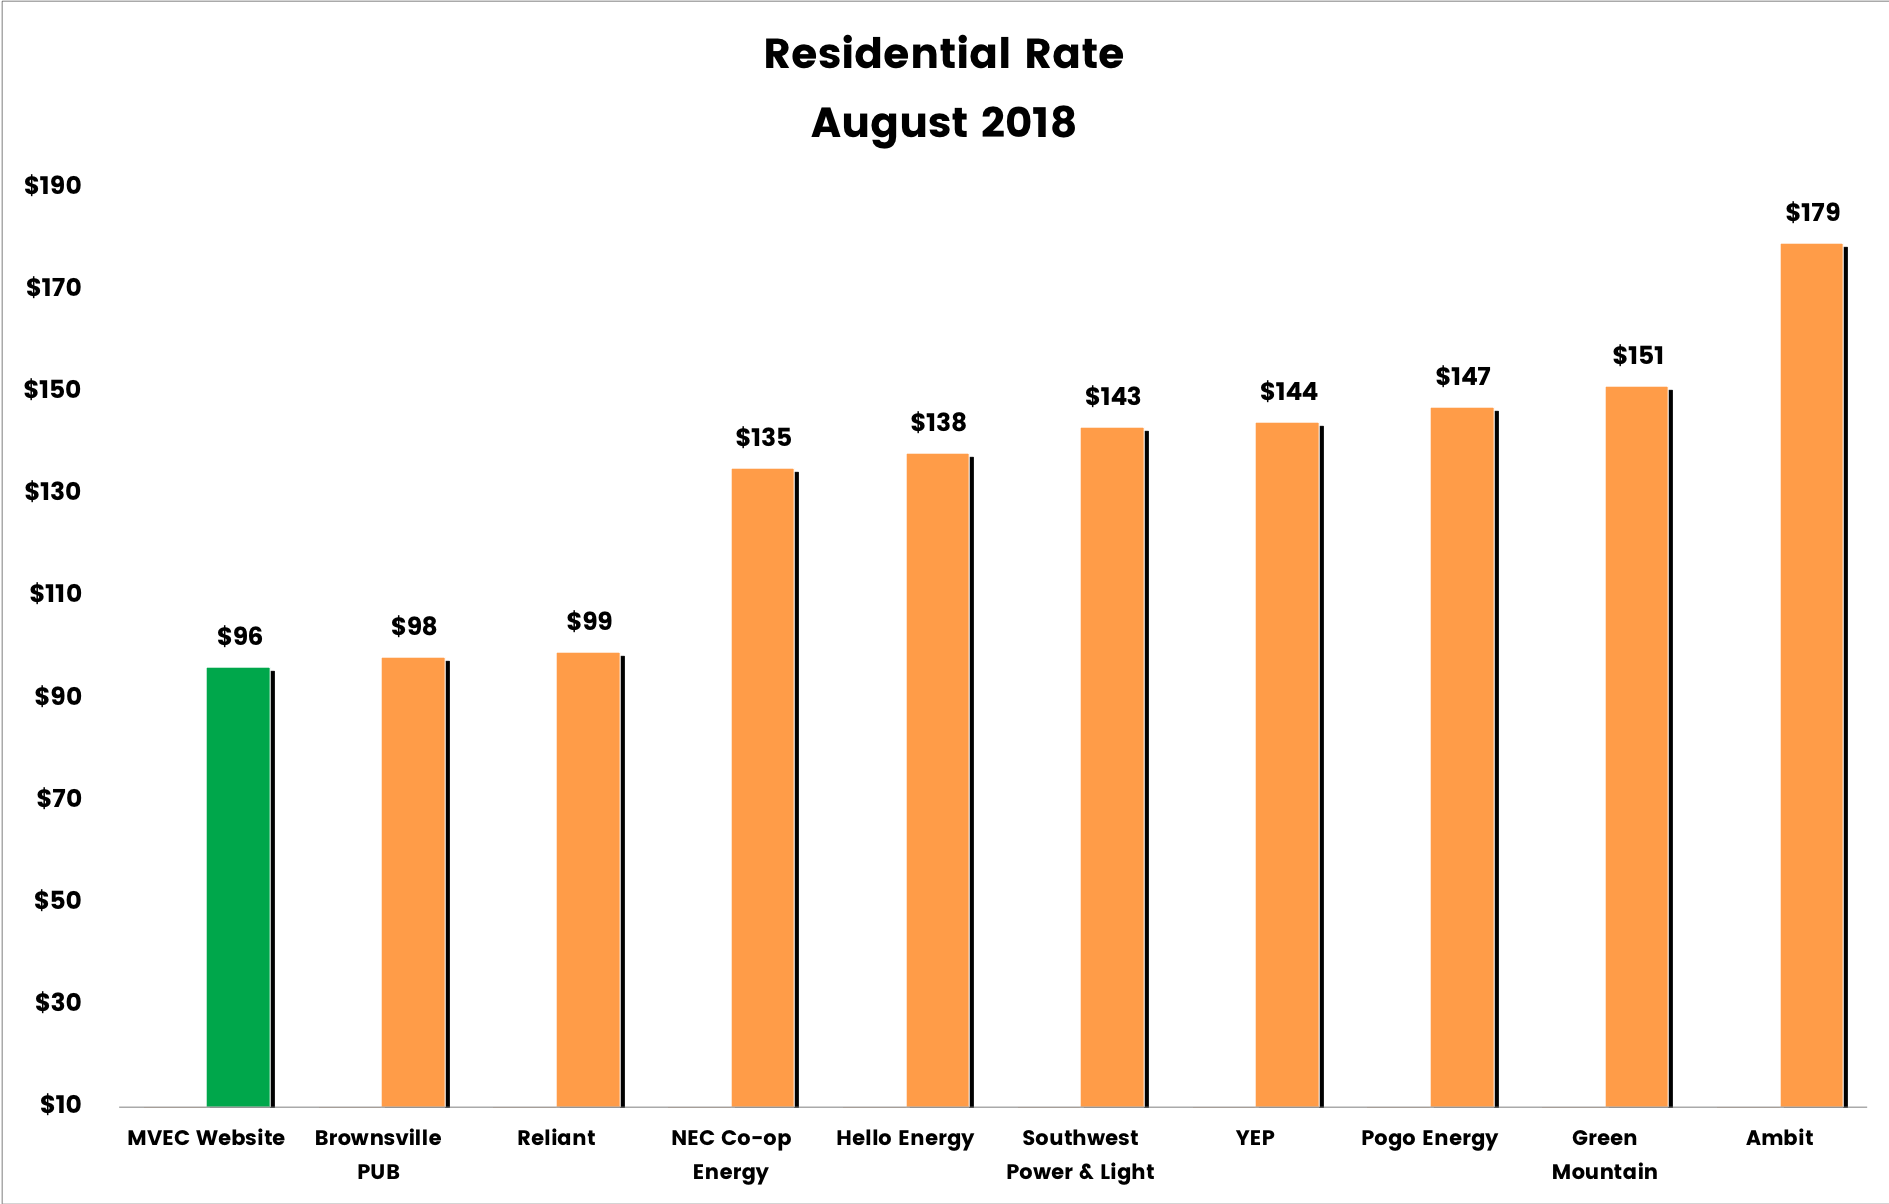 Bar graph showing Residential Rates for August 2018